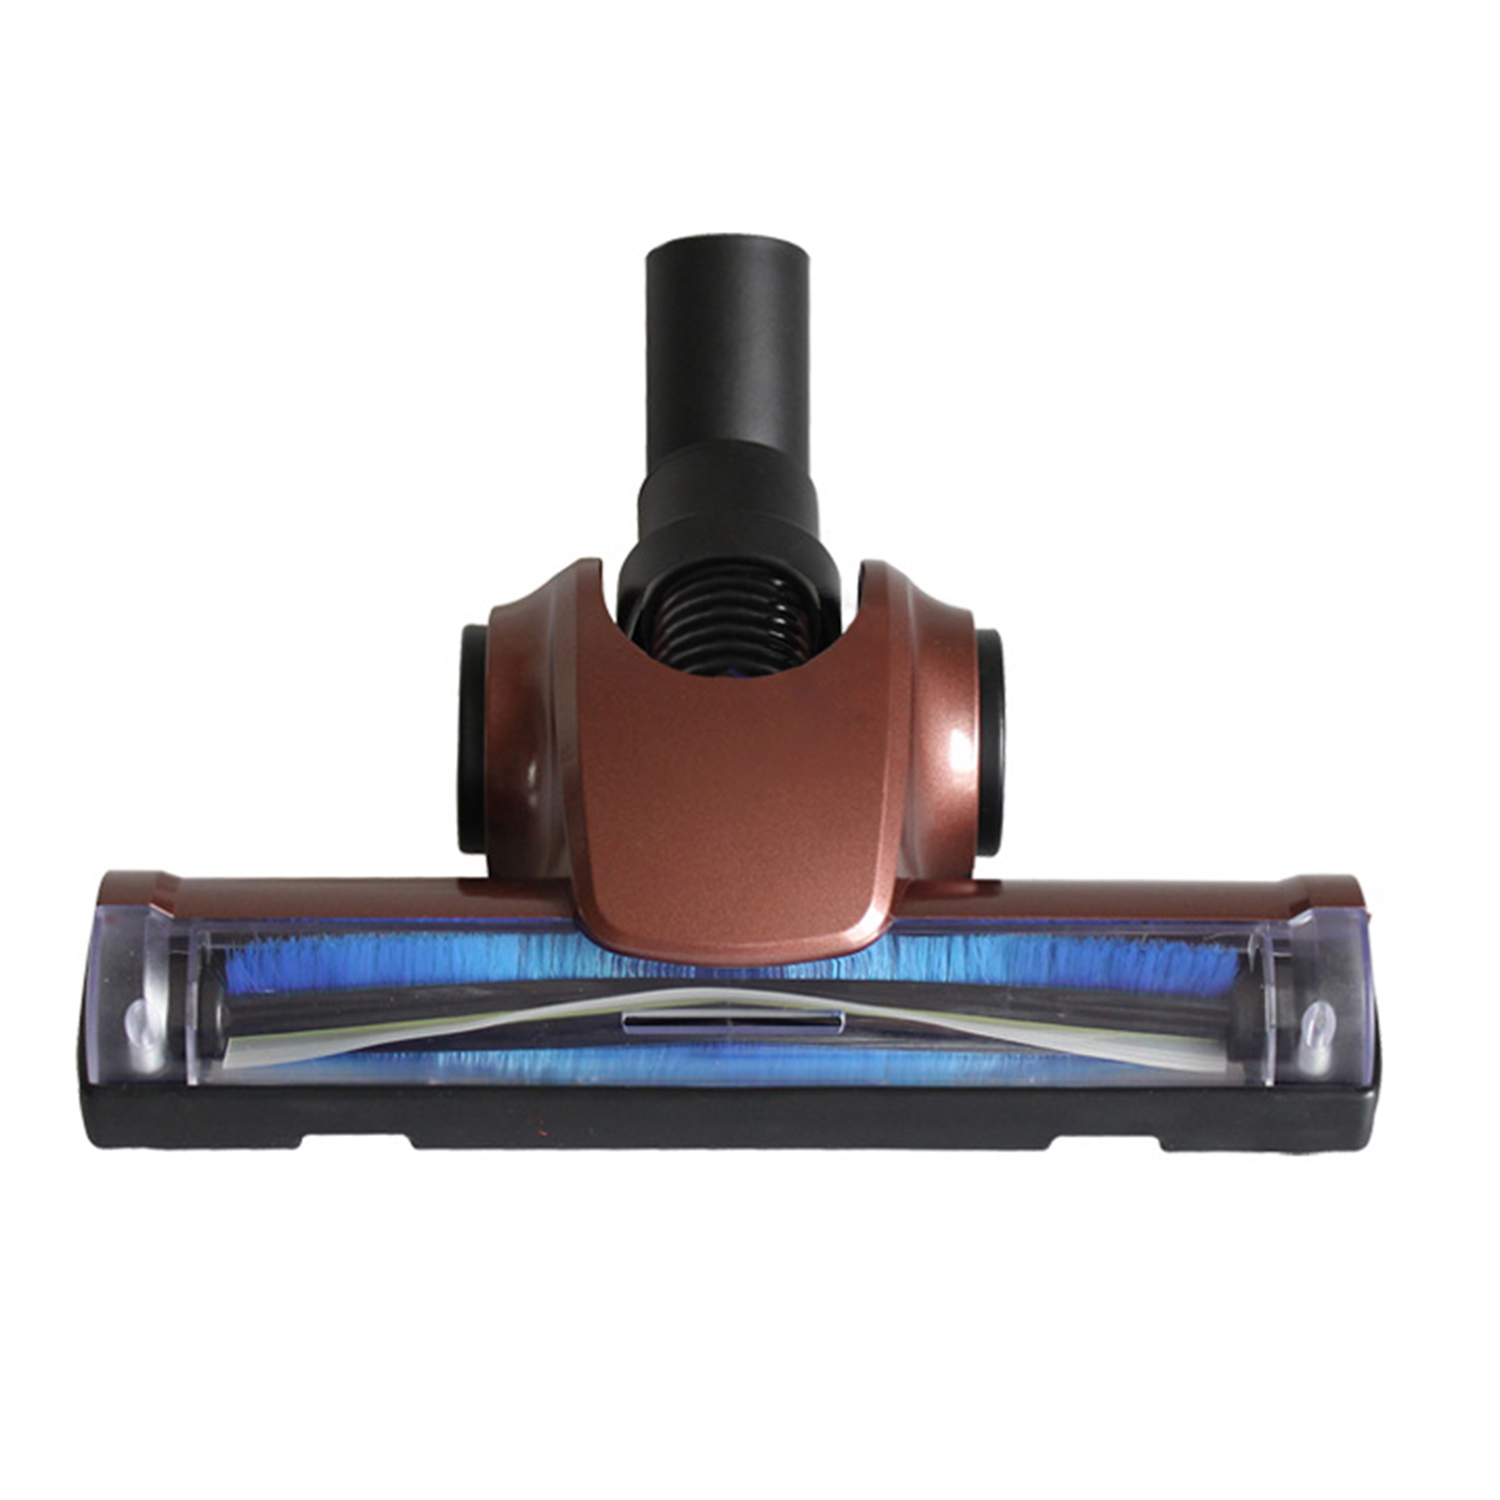 NOCM-32mm New European Version Vacuum Cleaner Accessories For Efficient Air Brush The Floor Carpet Efficient Cleaning